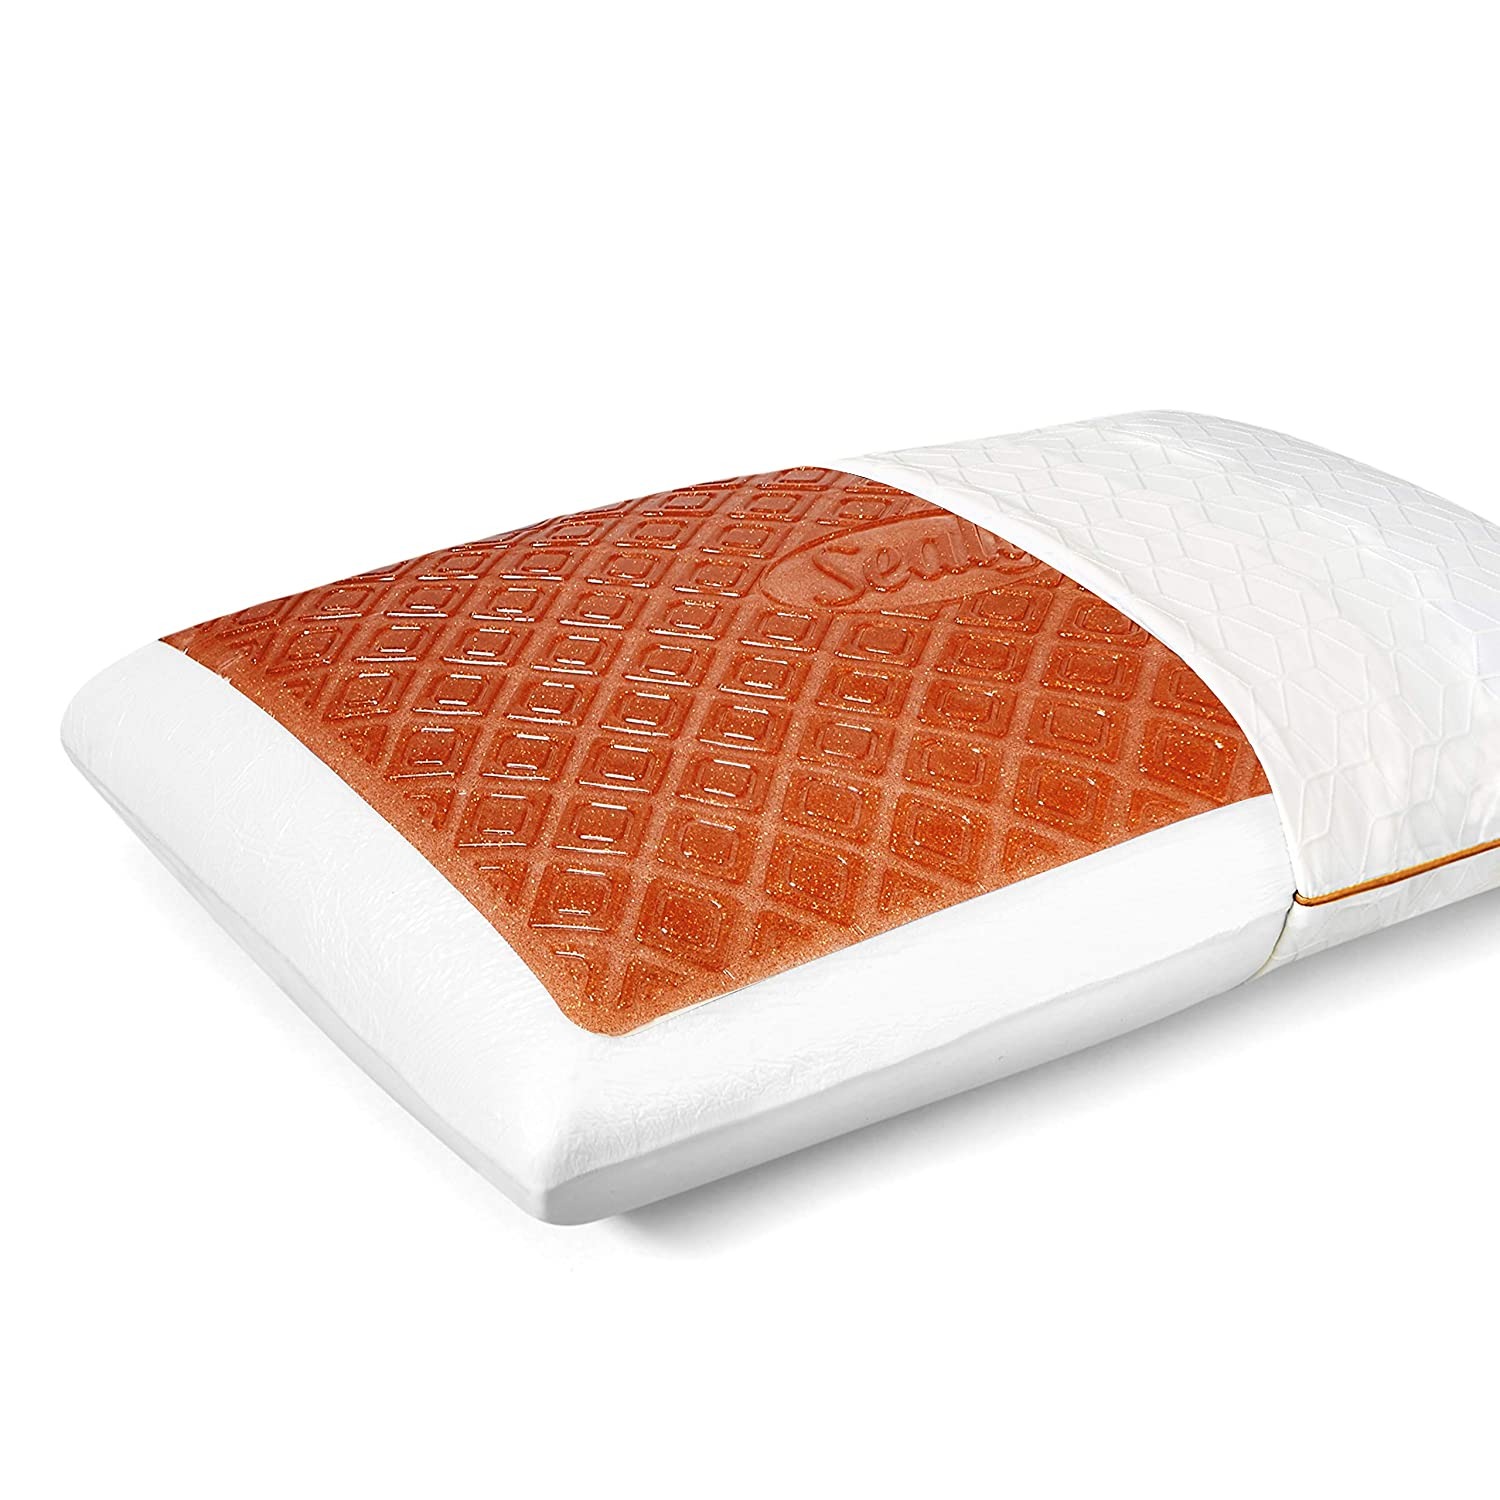 Sealy Copper CoolGel Memory Foam Standard Size Bed Pillow, White